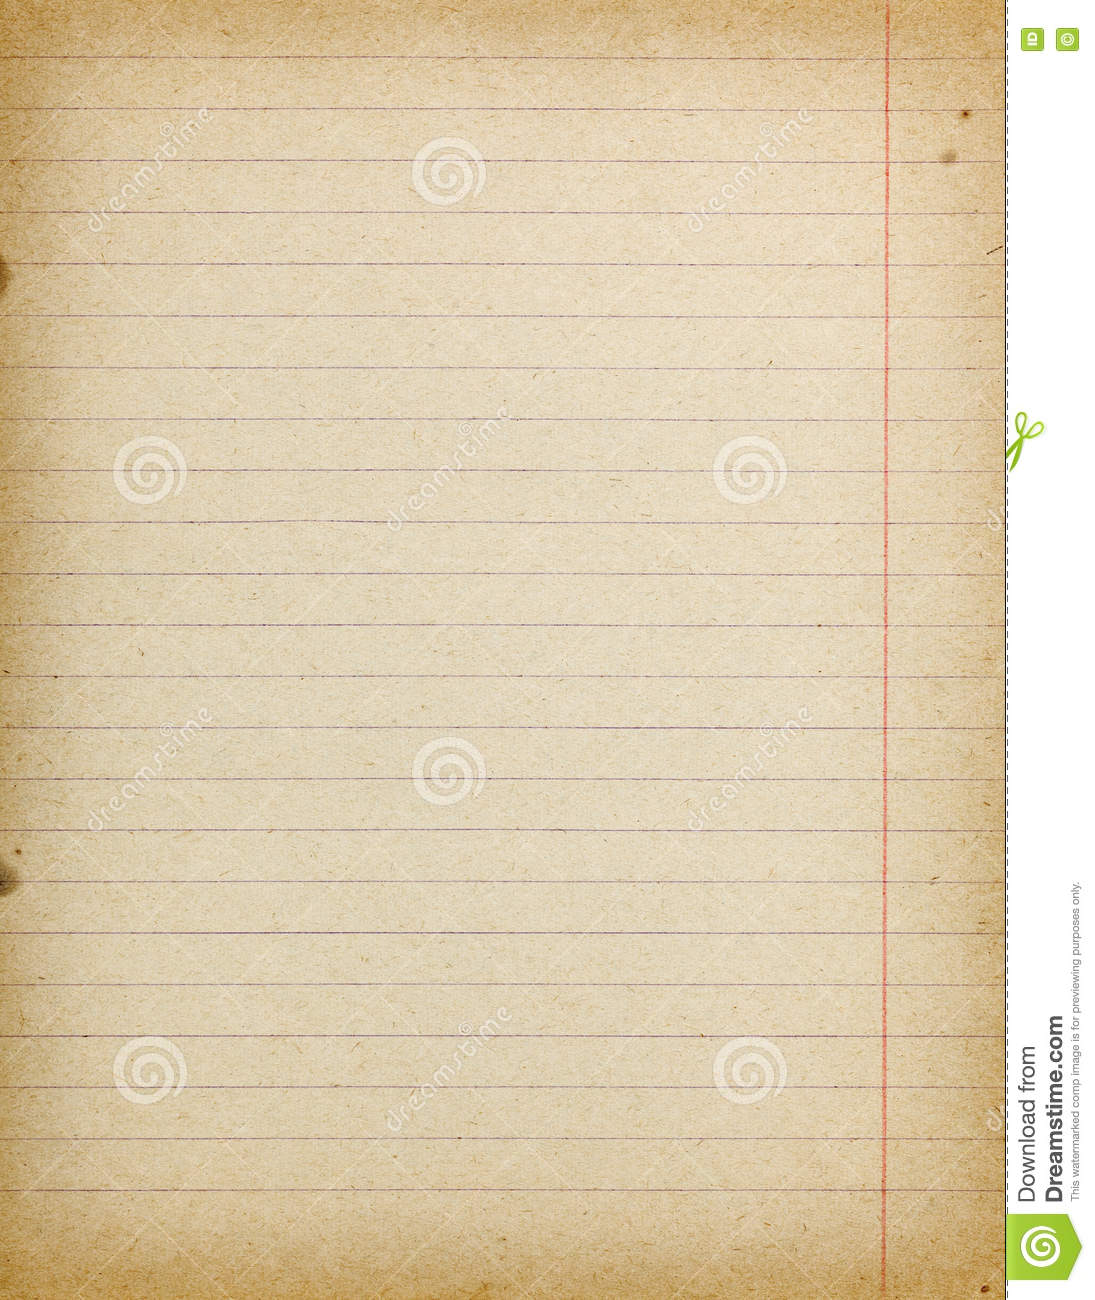 Wallpaper Lined Paper: Vintage Lined Paper Background